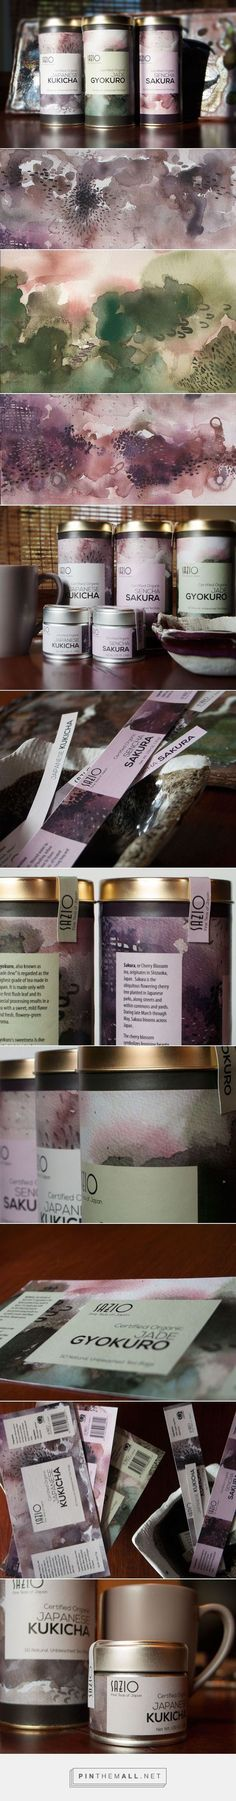 Sazio Tea Packaging by Michele Alise | Fivestar Branding Agency – Design and Branding Agency & Curated Inspiration Gallery